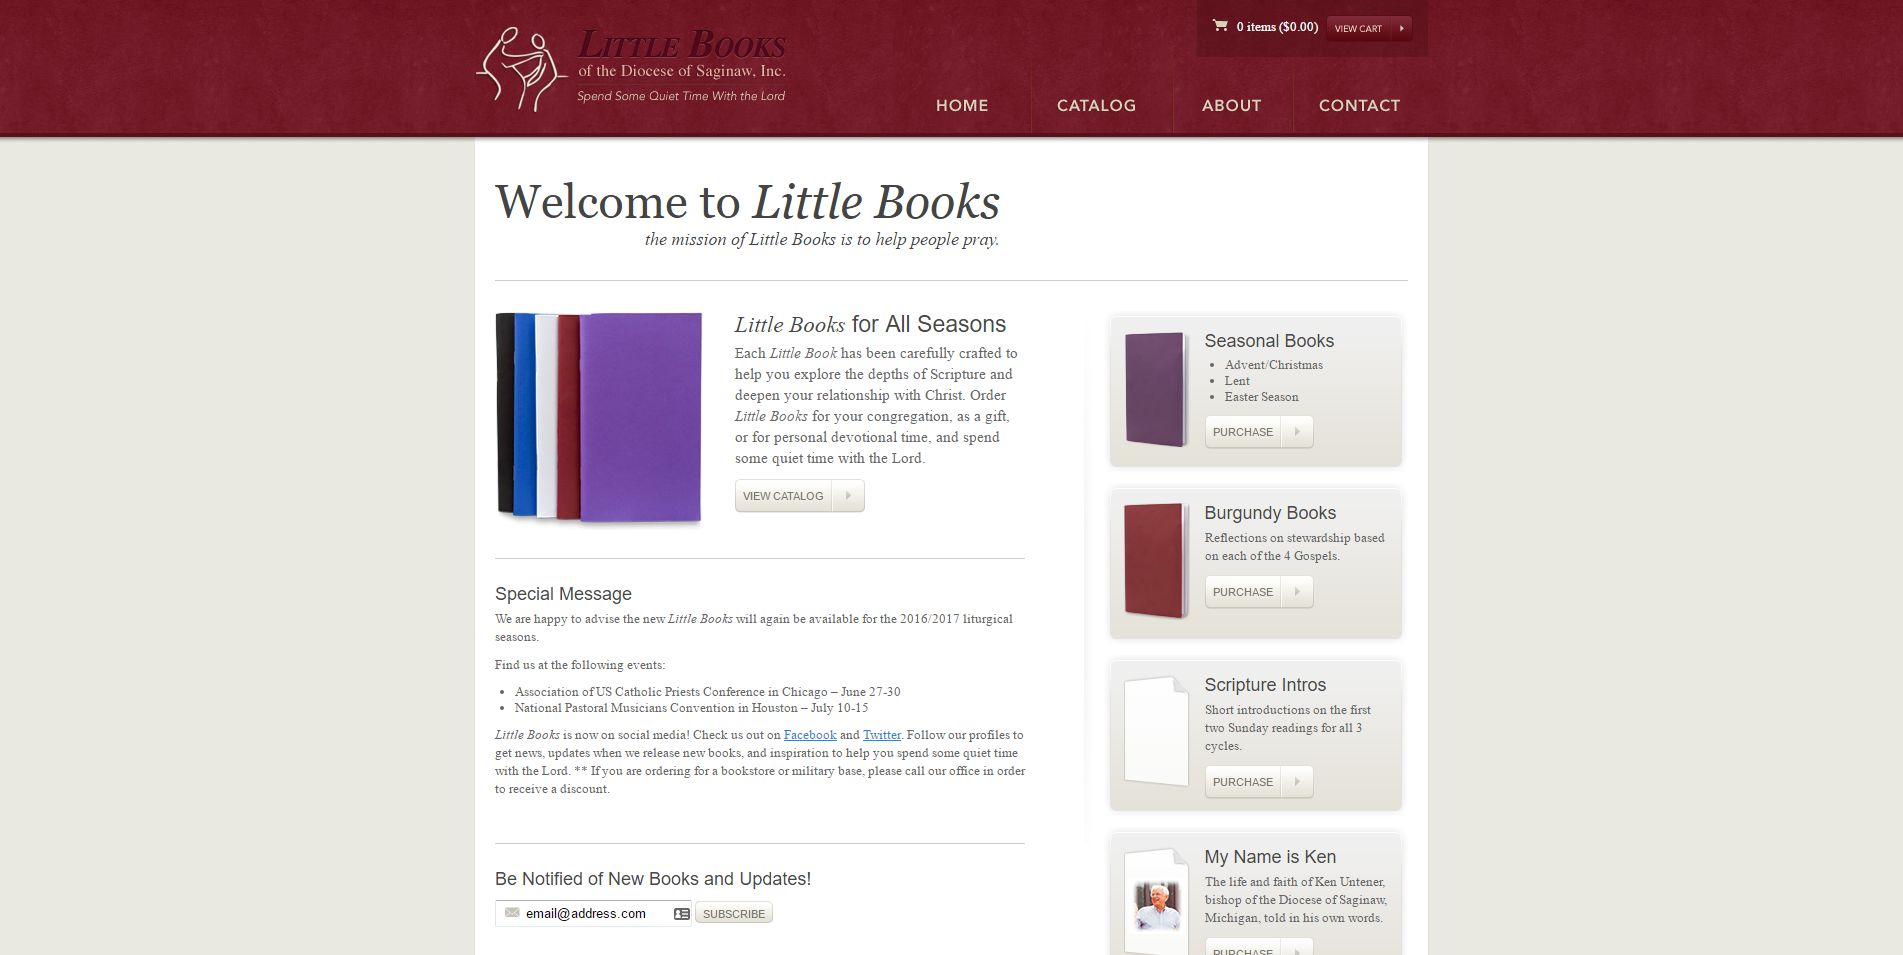 LittleBooks.org - Home